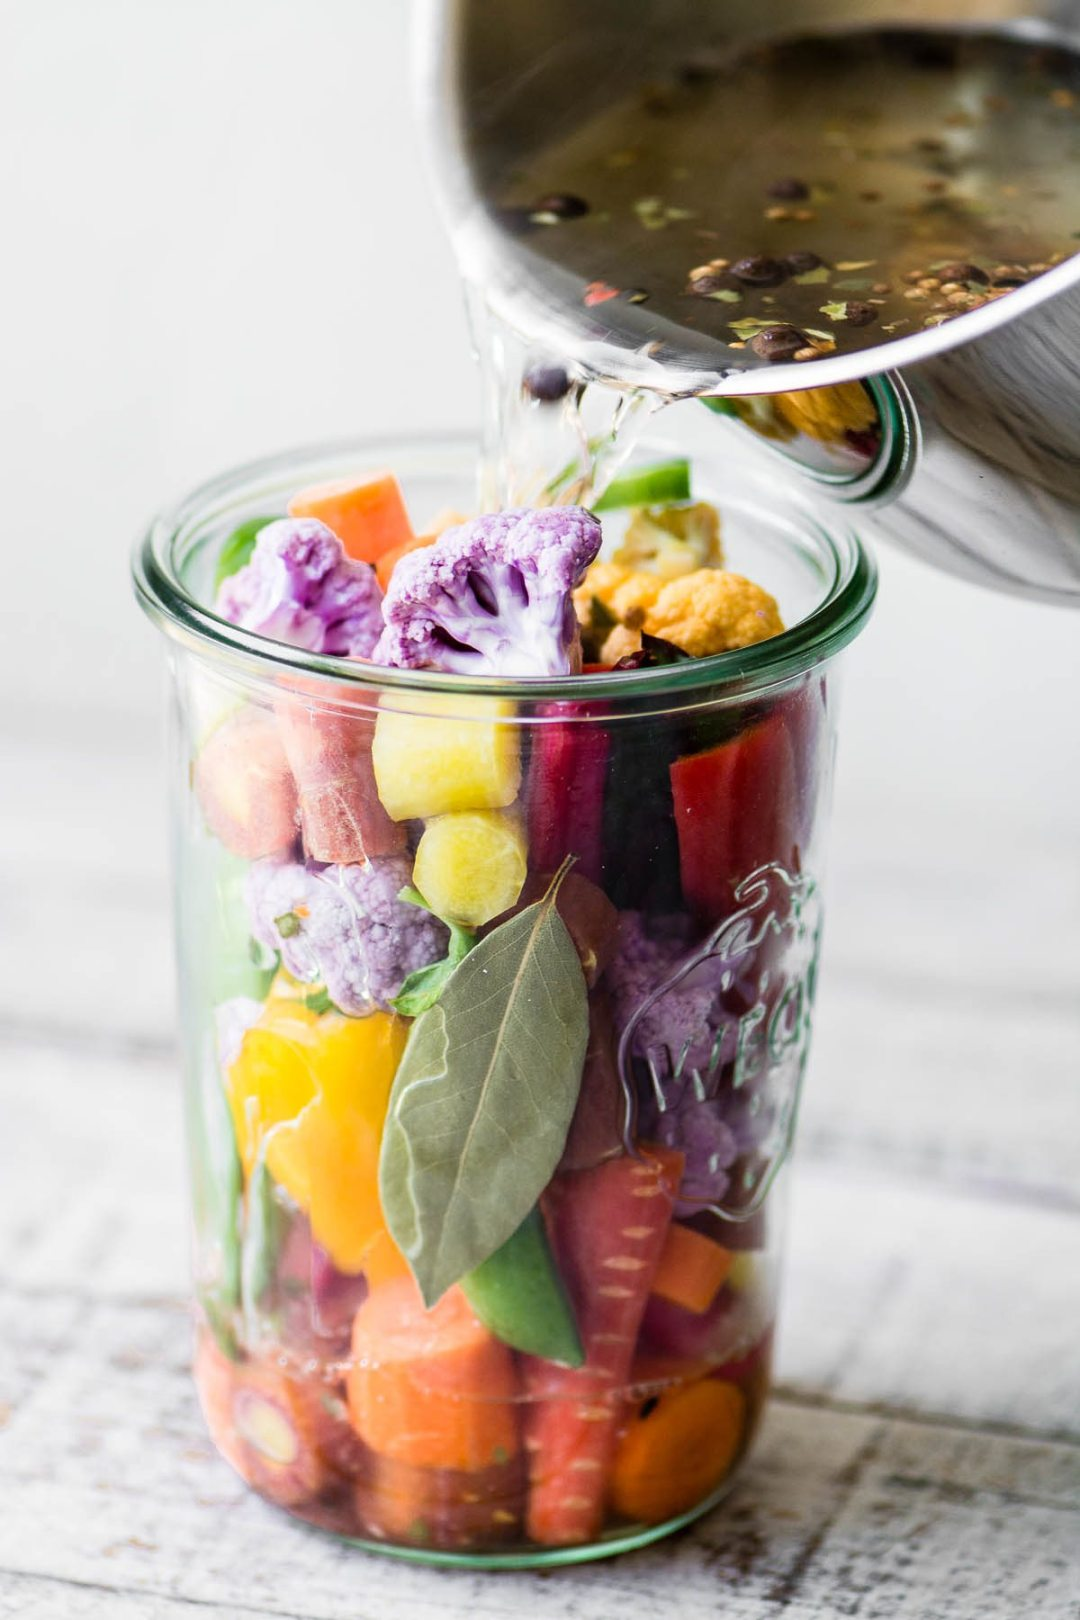 Quick Pickled Rainbow Giardiniera ~ Pouring hot brine into a jar of colorful giardiniera